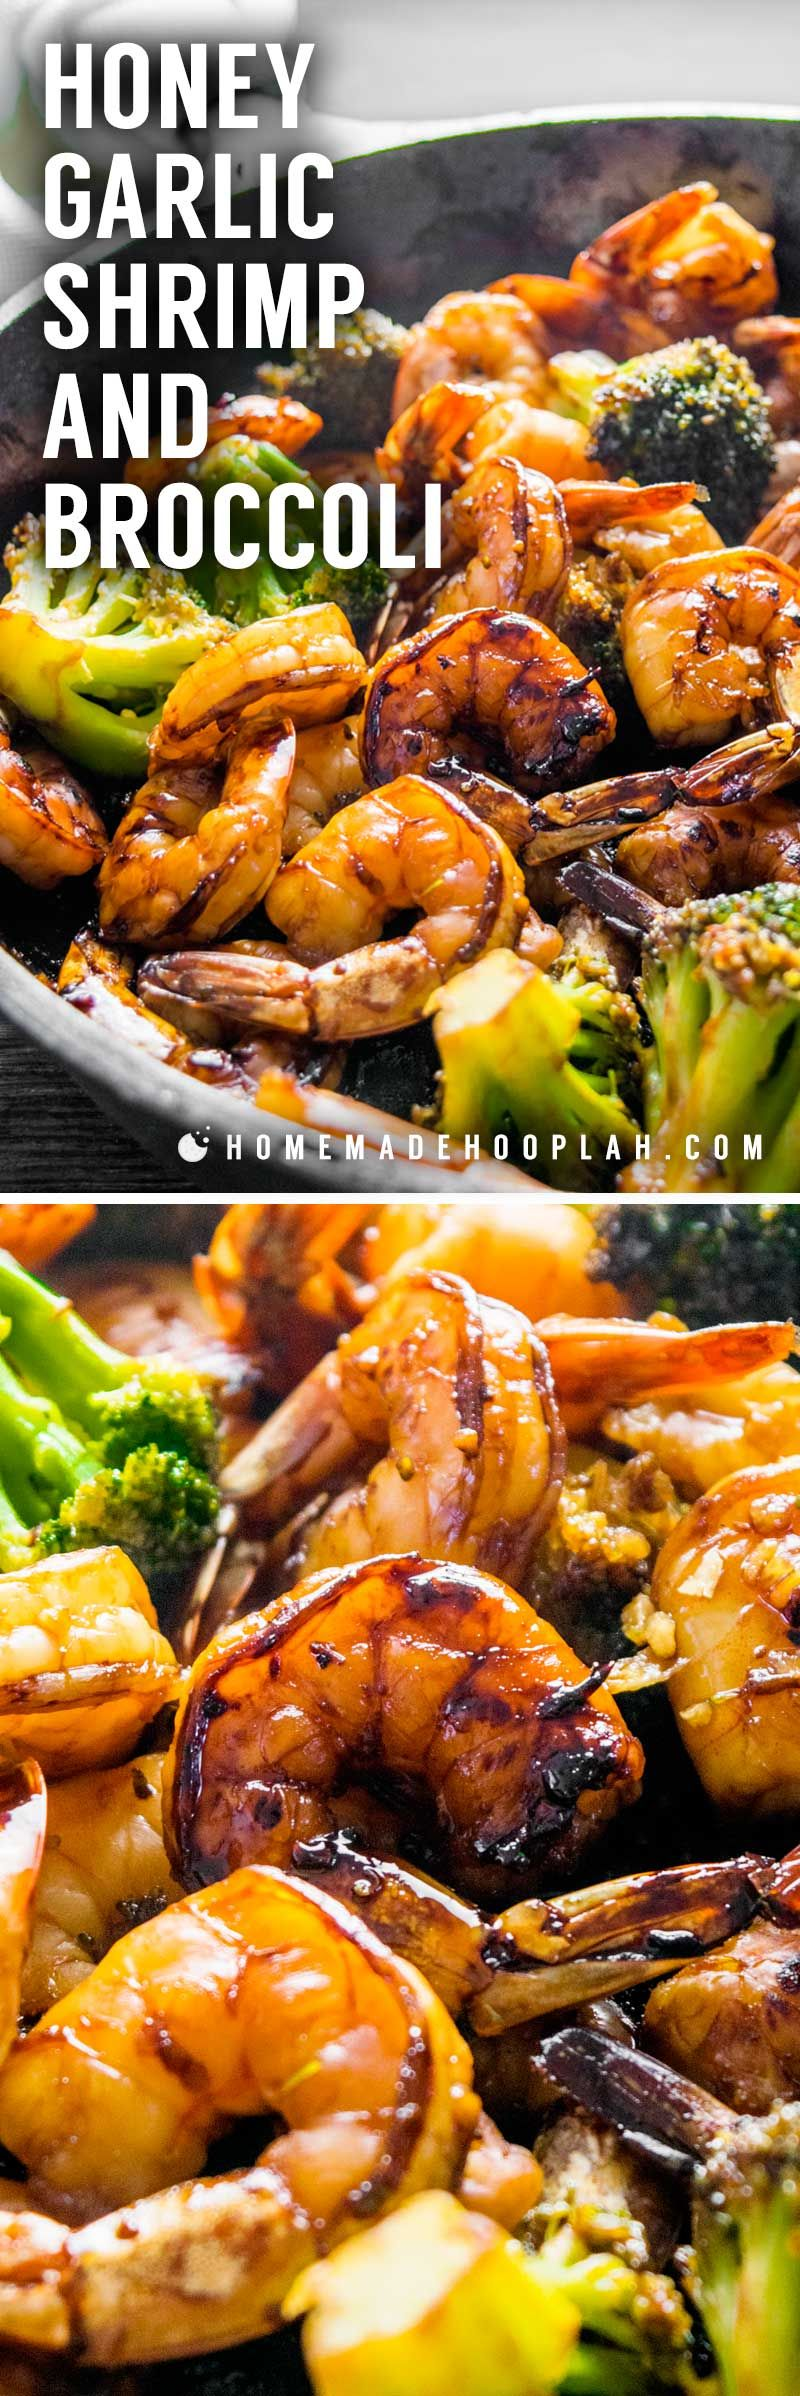 Photo of Honey Garlic Shrimp and Broccoli